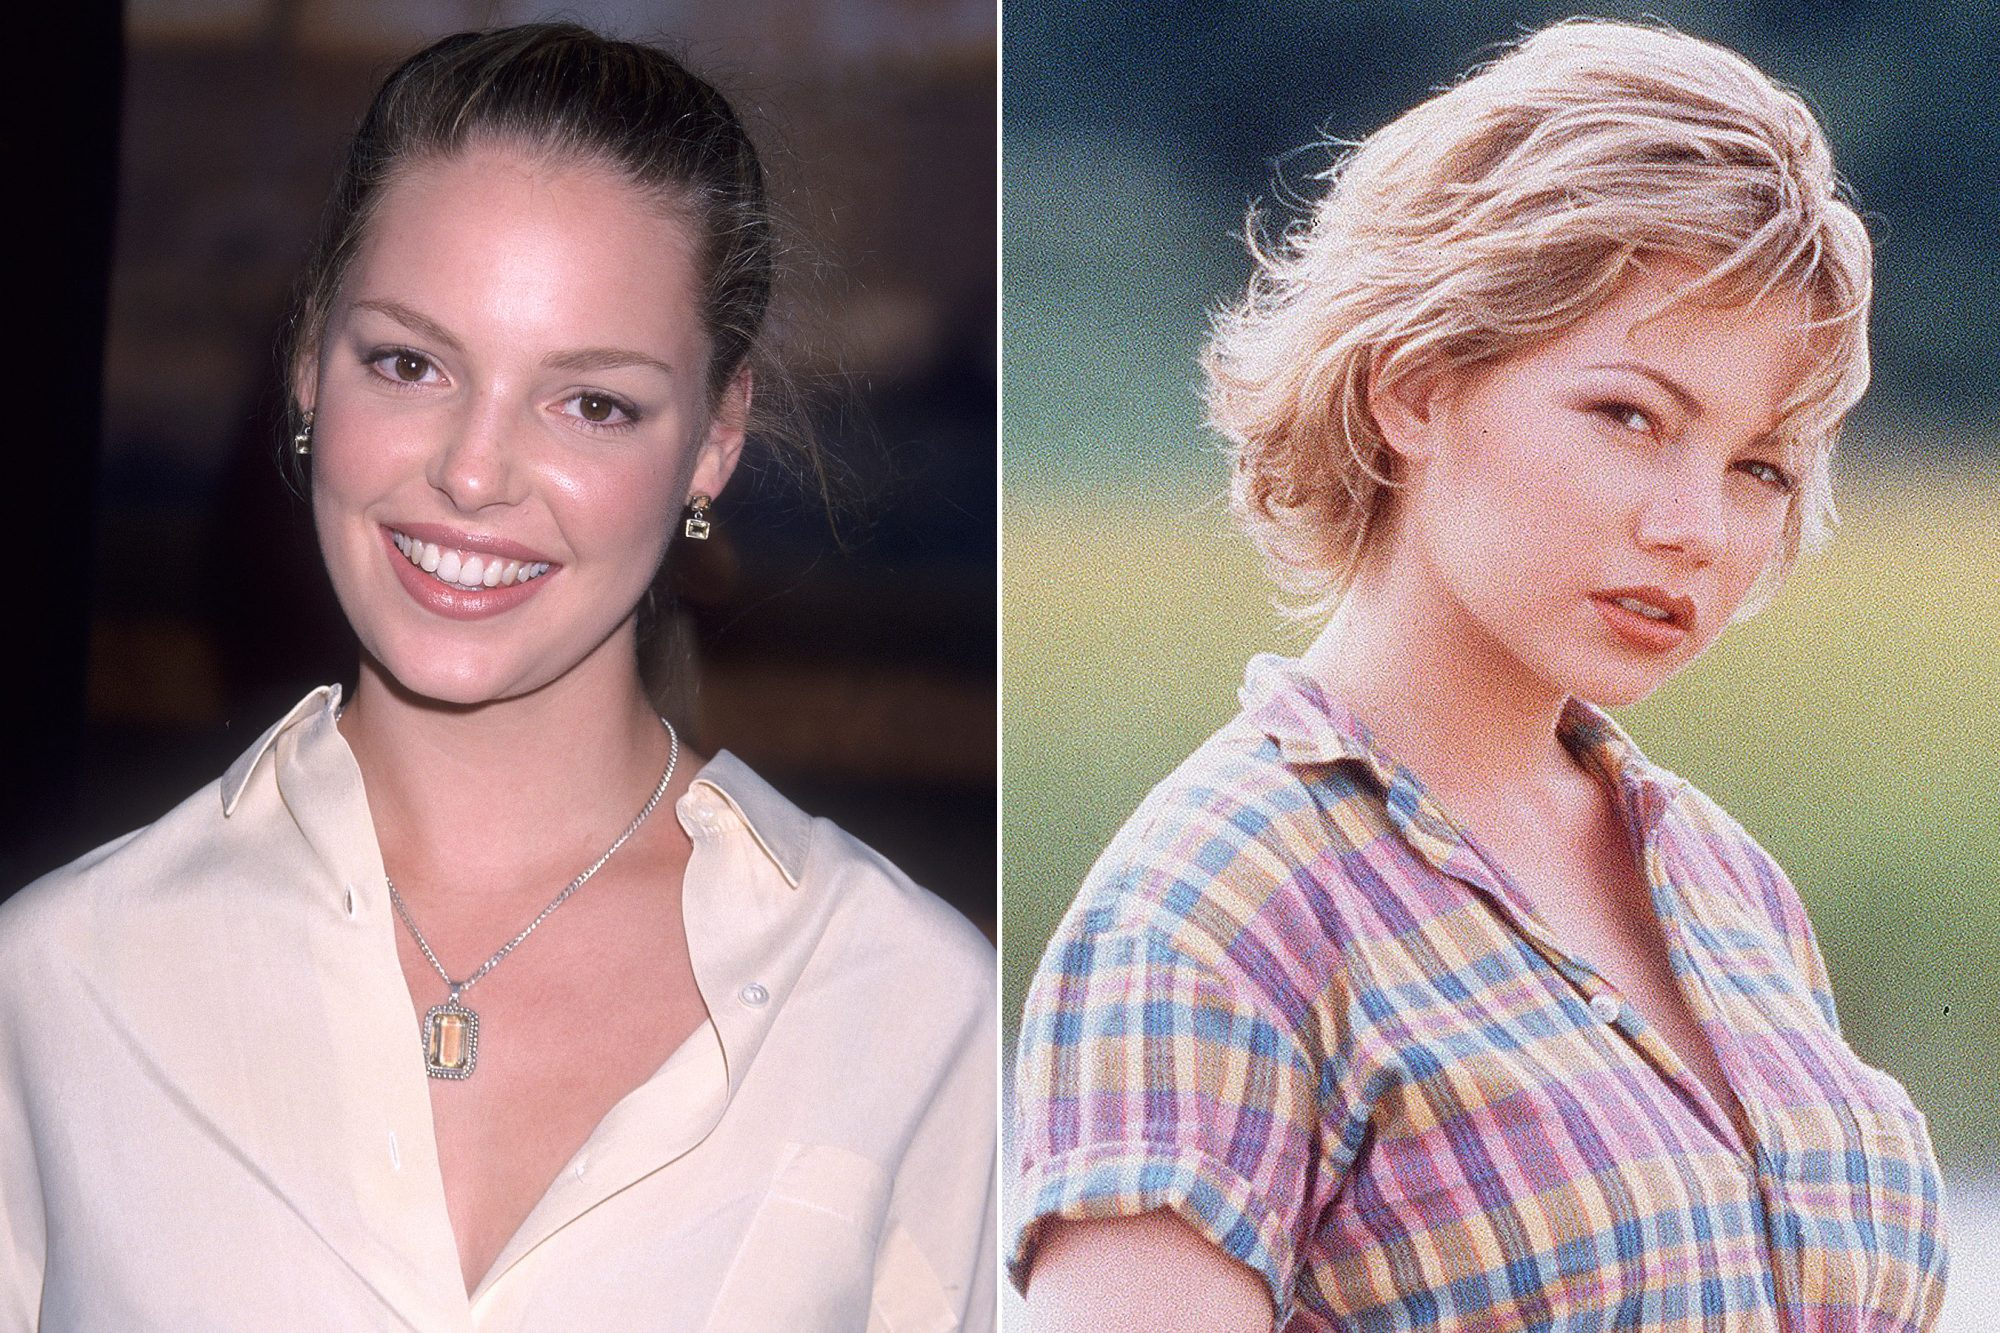 katherine-heigl-michelle-williams